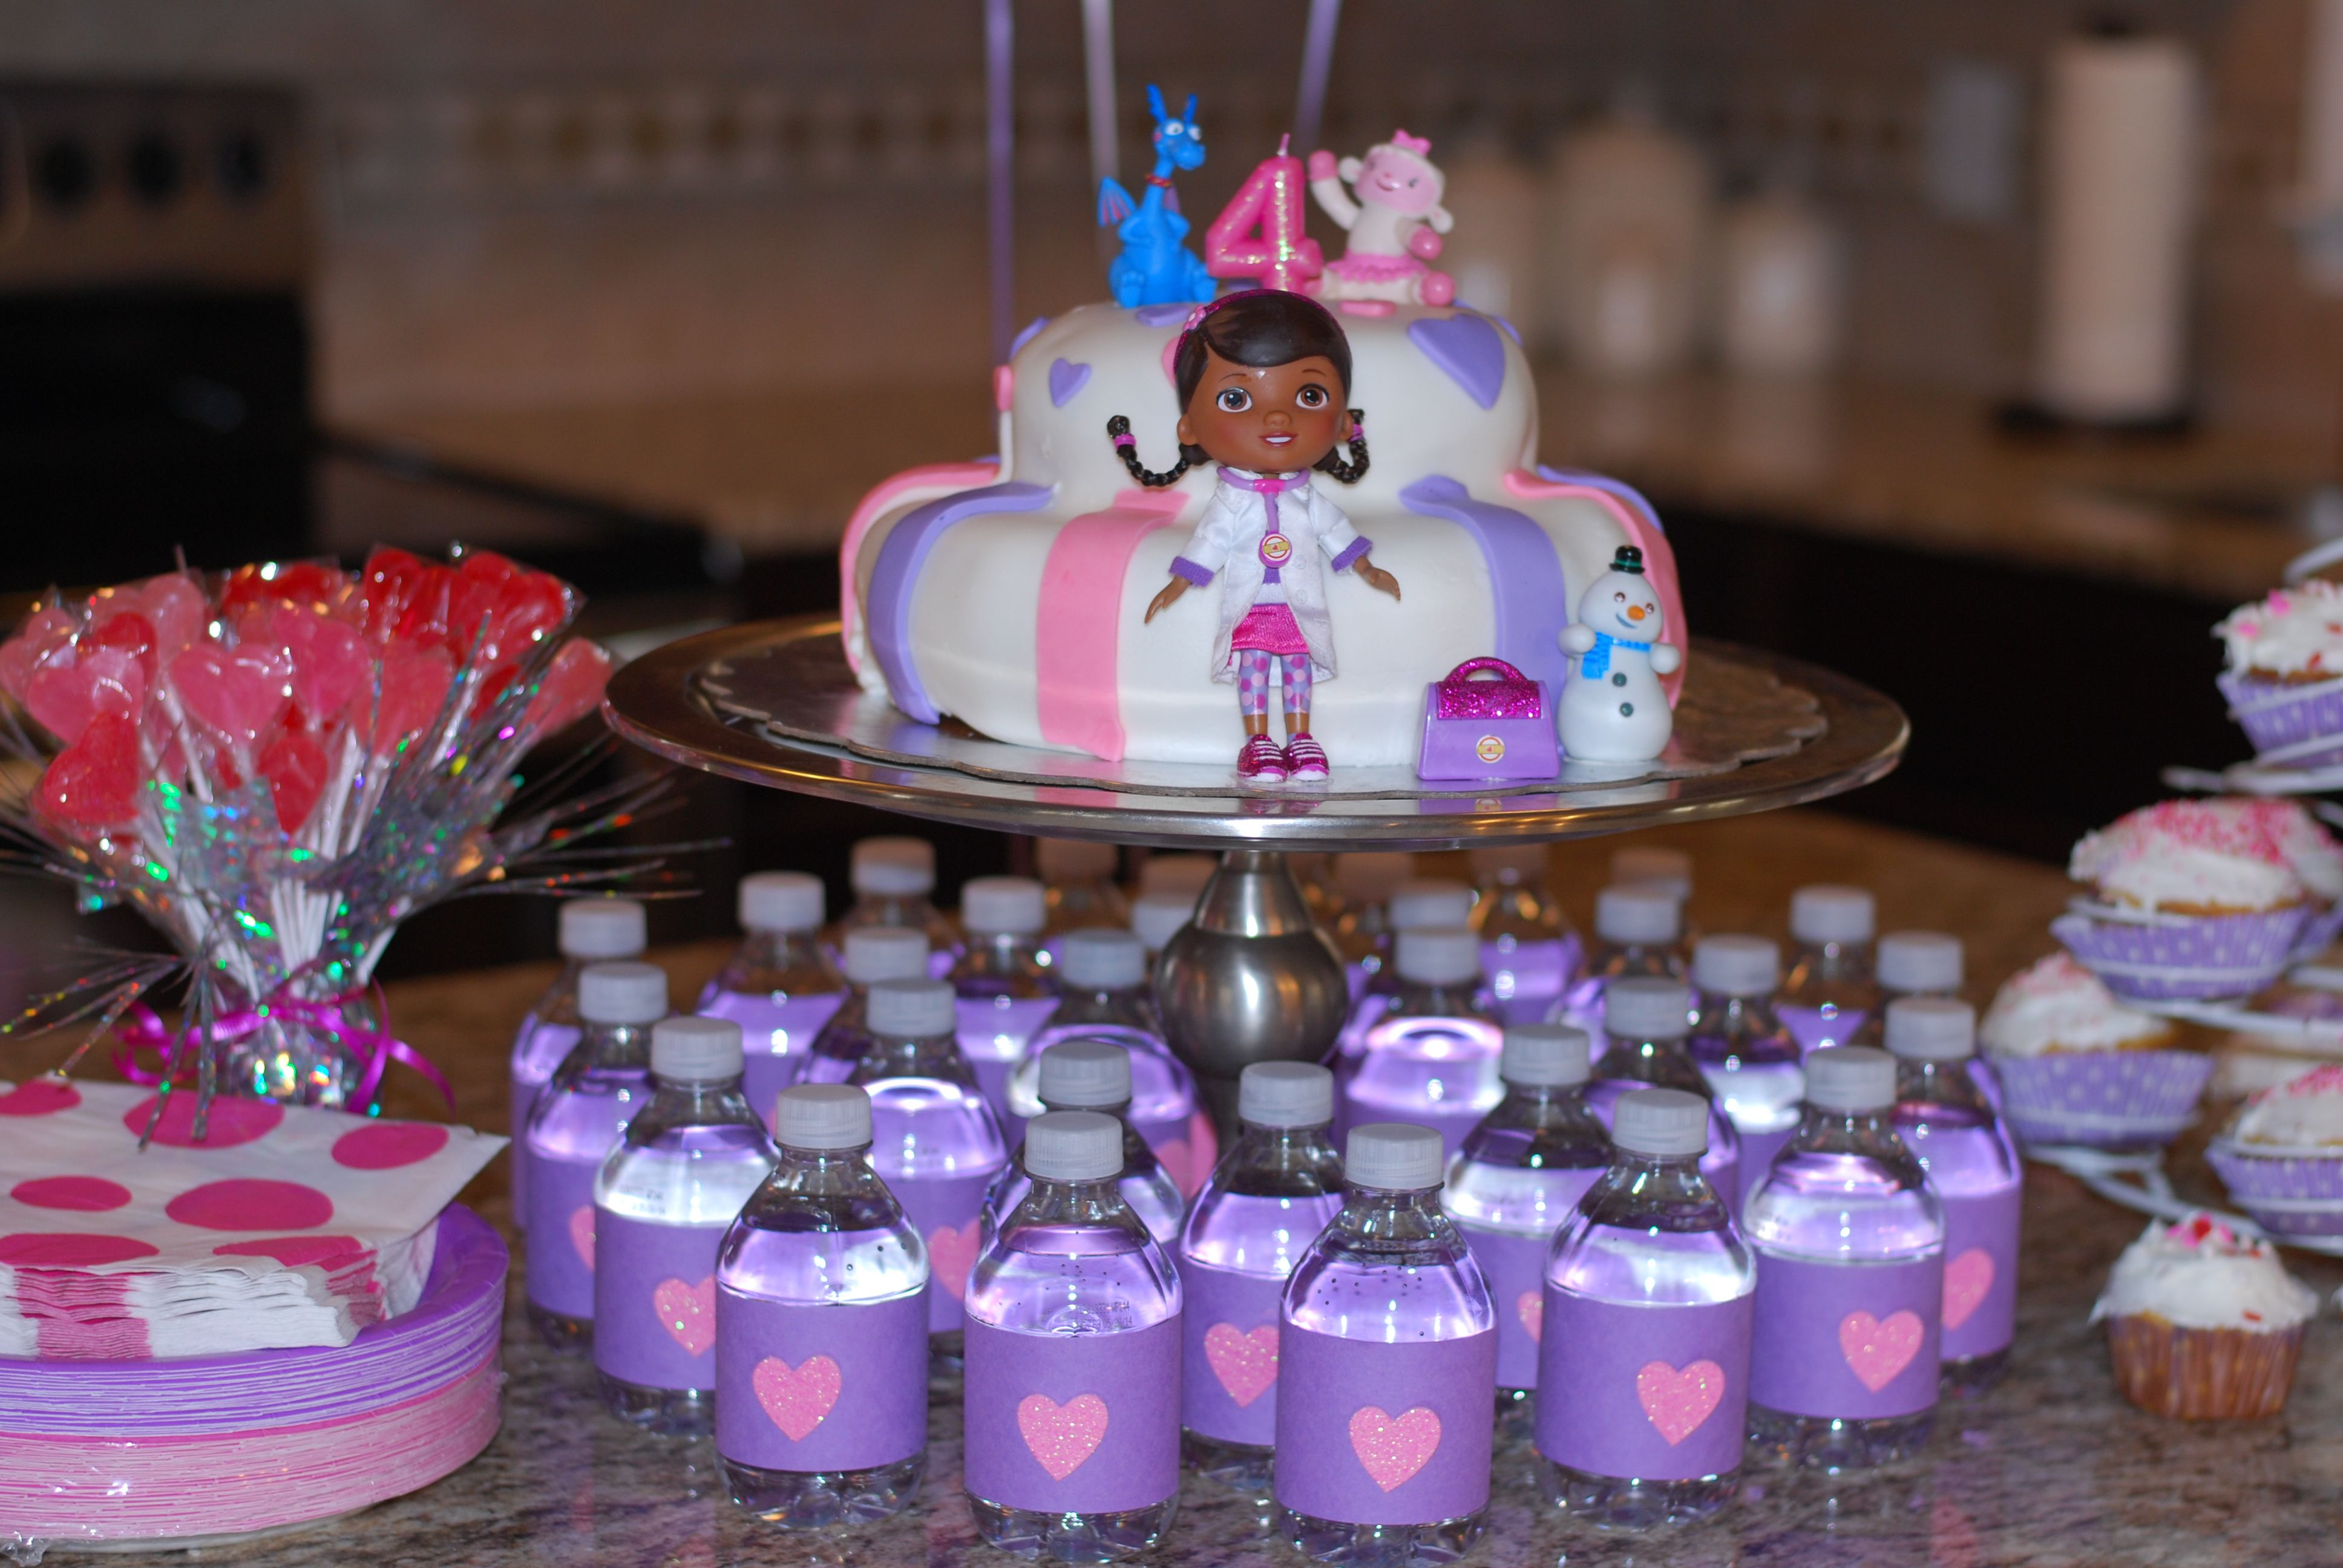 Pin By Sara Thomas On Doc Mcstuffins Party Doc Mcstuffins Birthday Party Fondant Girl Doc Mcstuffins Cake